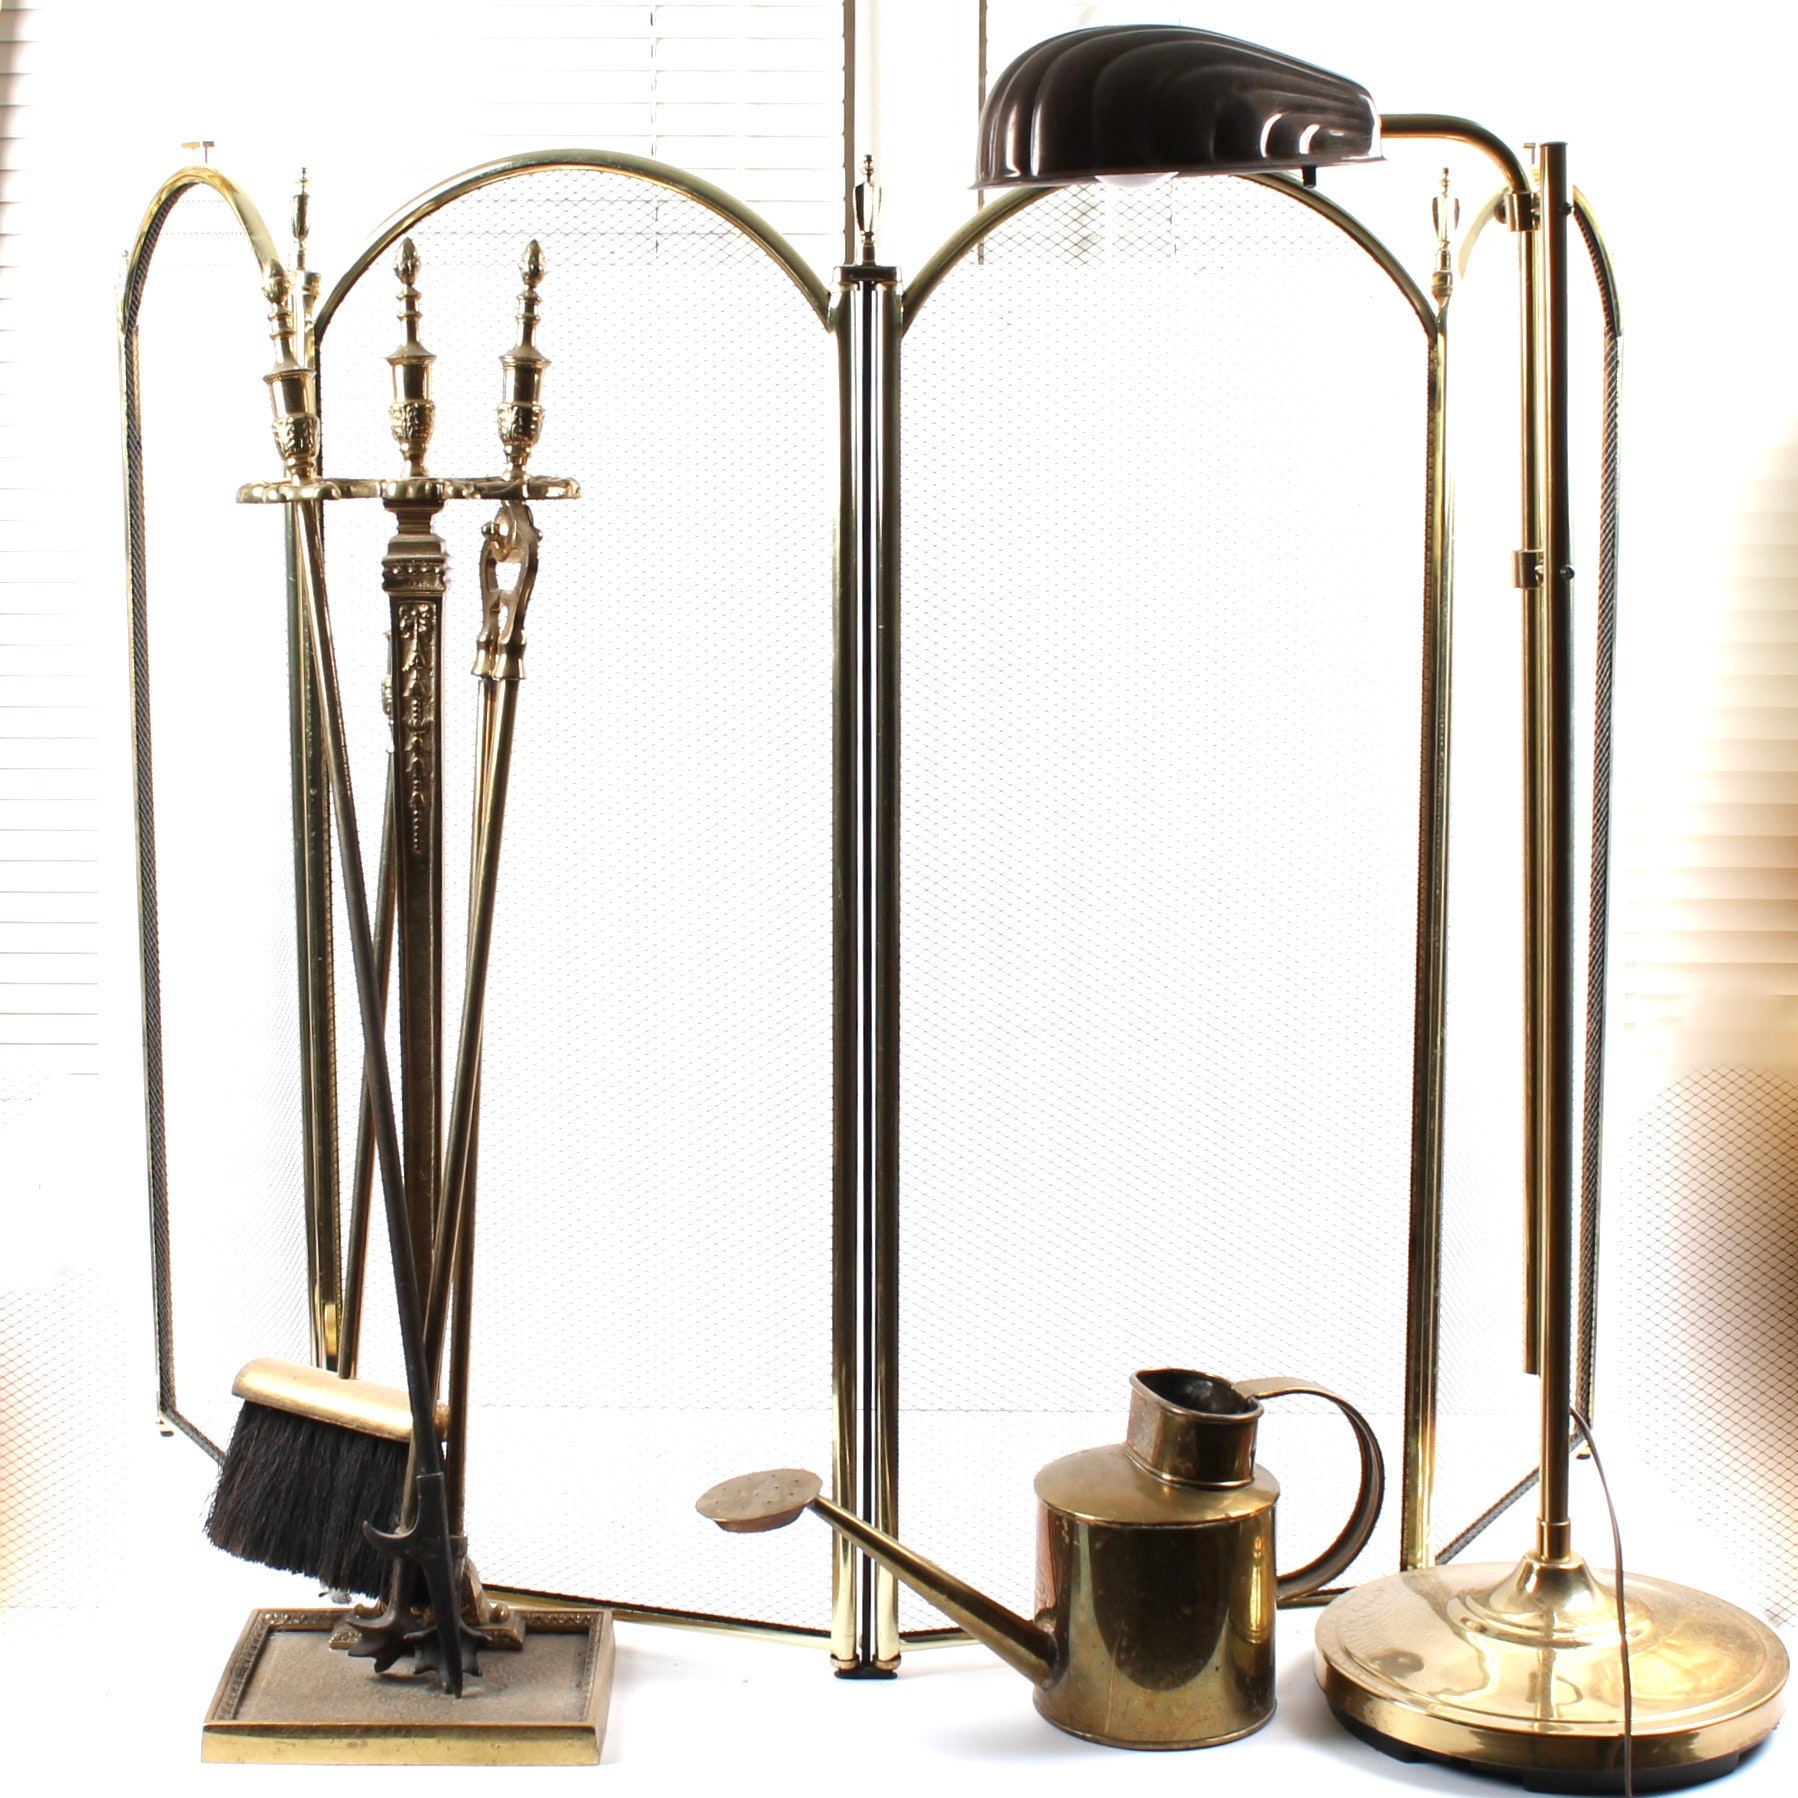 Vintage Brass Fireplace Tools and Reading Lamp